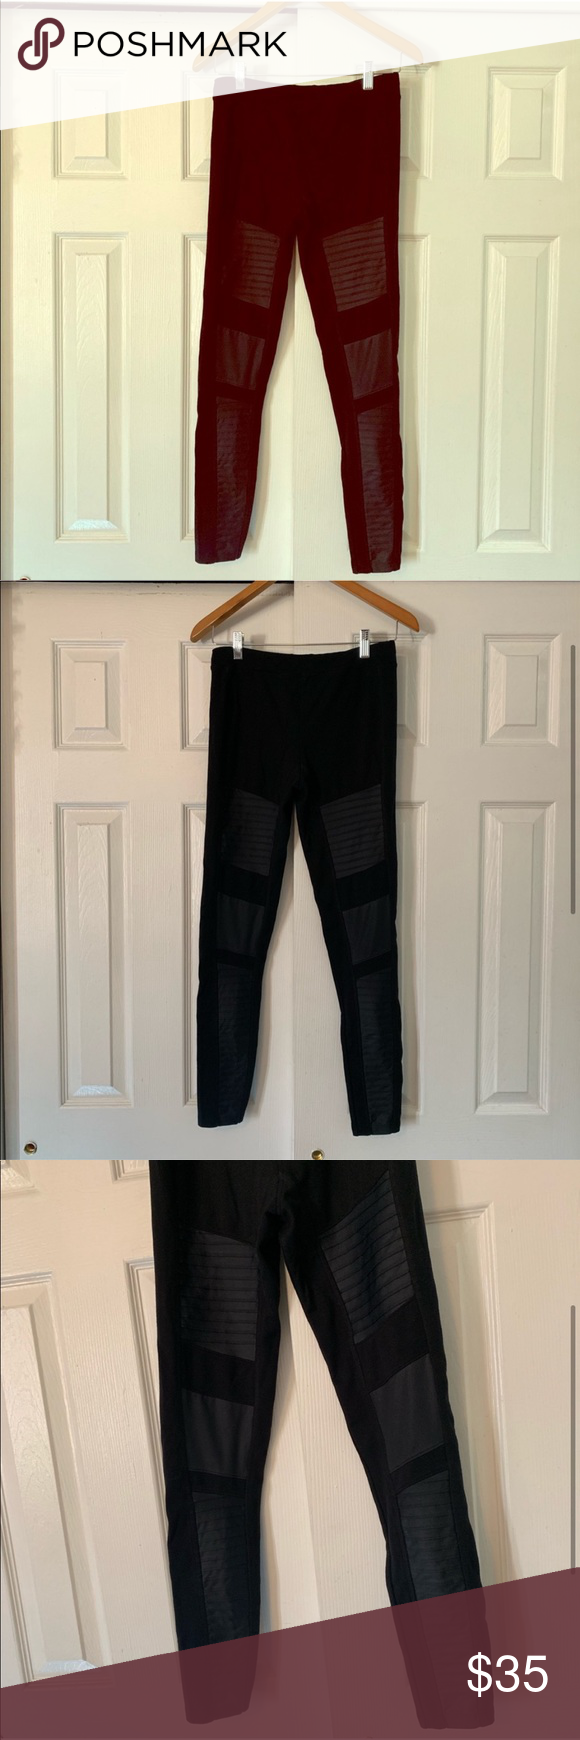 Express Black Moto Style Leggings Size Small Express Black Moto Leggings Size Small Worn Delicately No Signs Of Black Moto Leggings Moto Leggings Moto Style